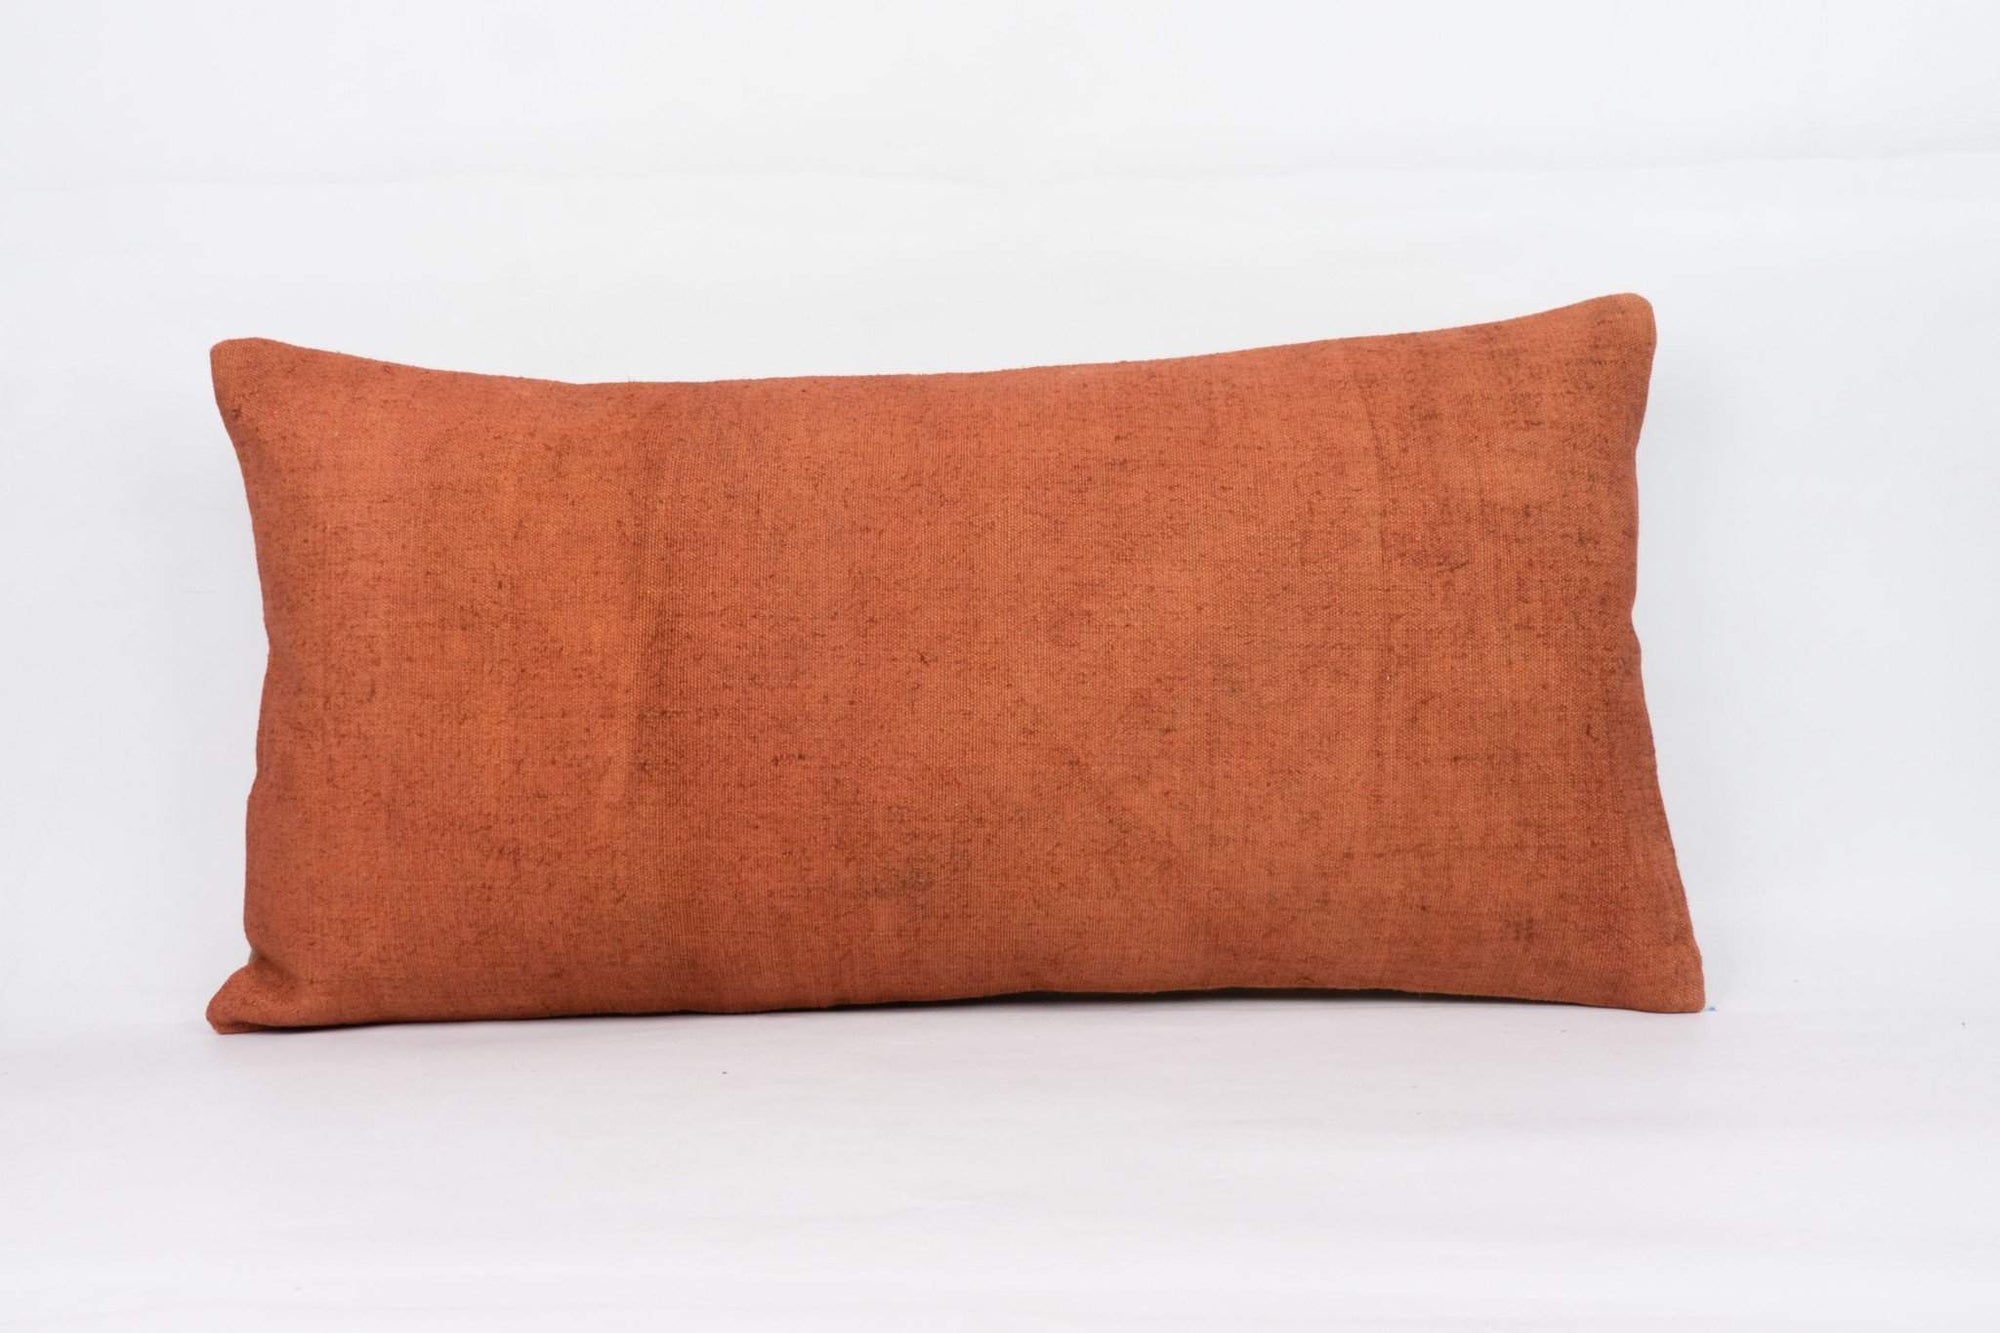 Plain Brown Kilim Pillow Cover 12x24 4204 - kilimpillowstore  - 1